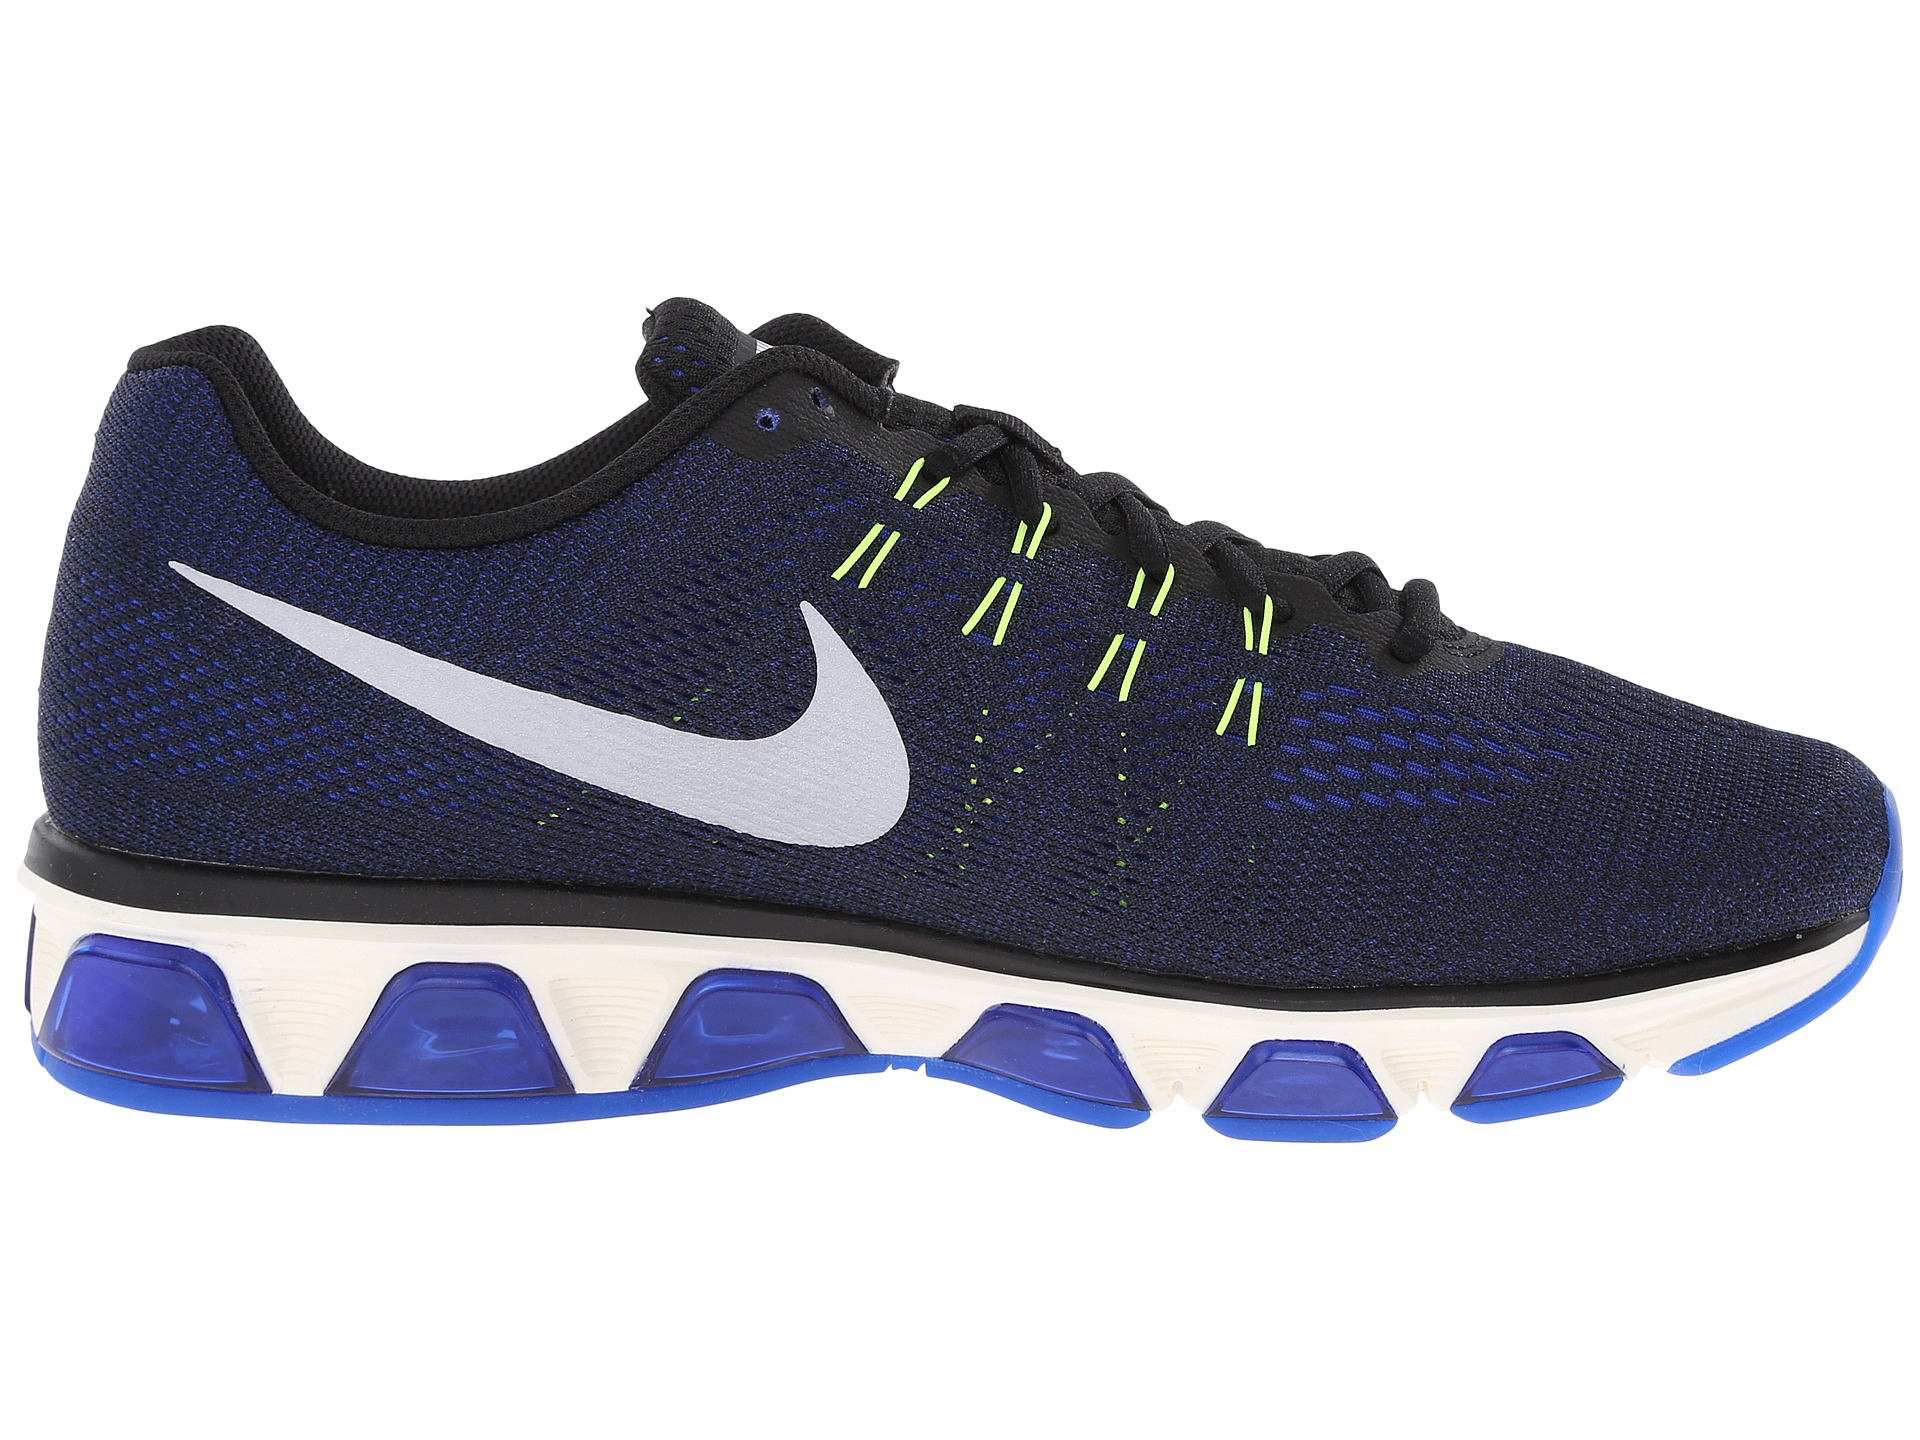 wholesale dealer f58f4 0780d ... switzerland lyst nike air max tailwind 8 in blue for men 0a74b df995